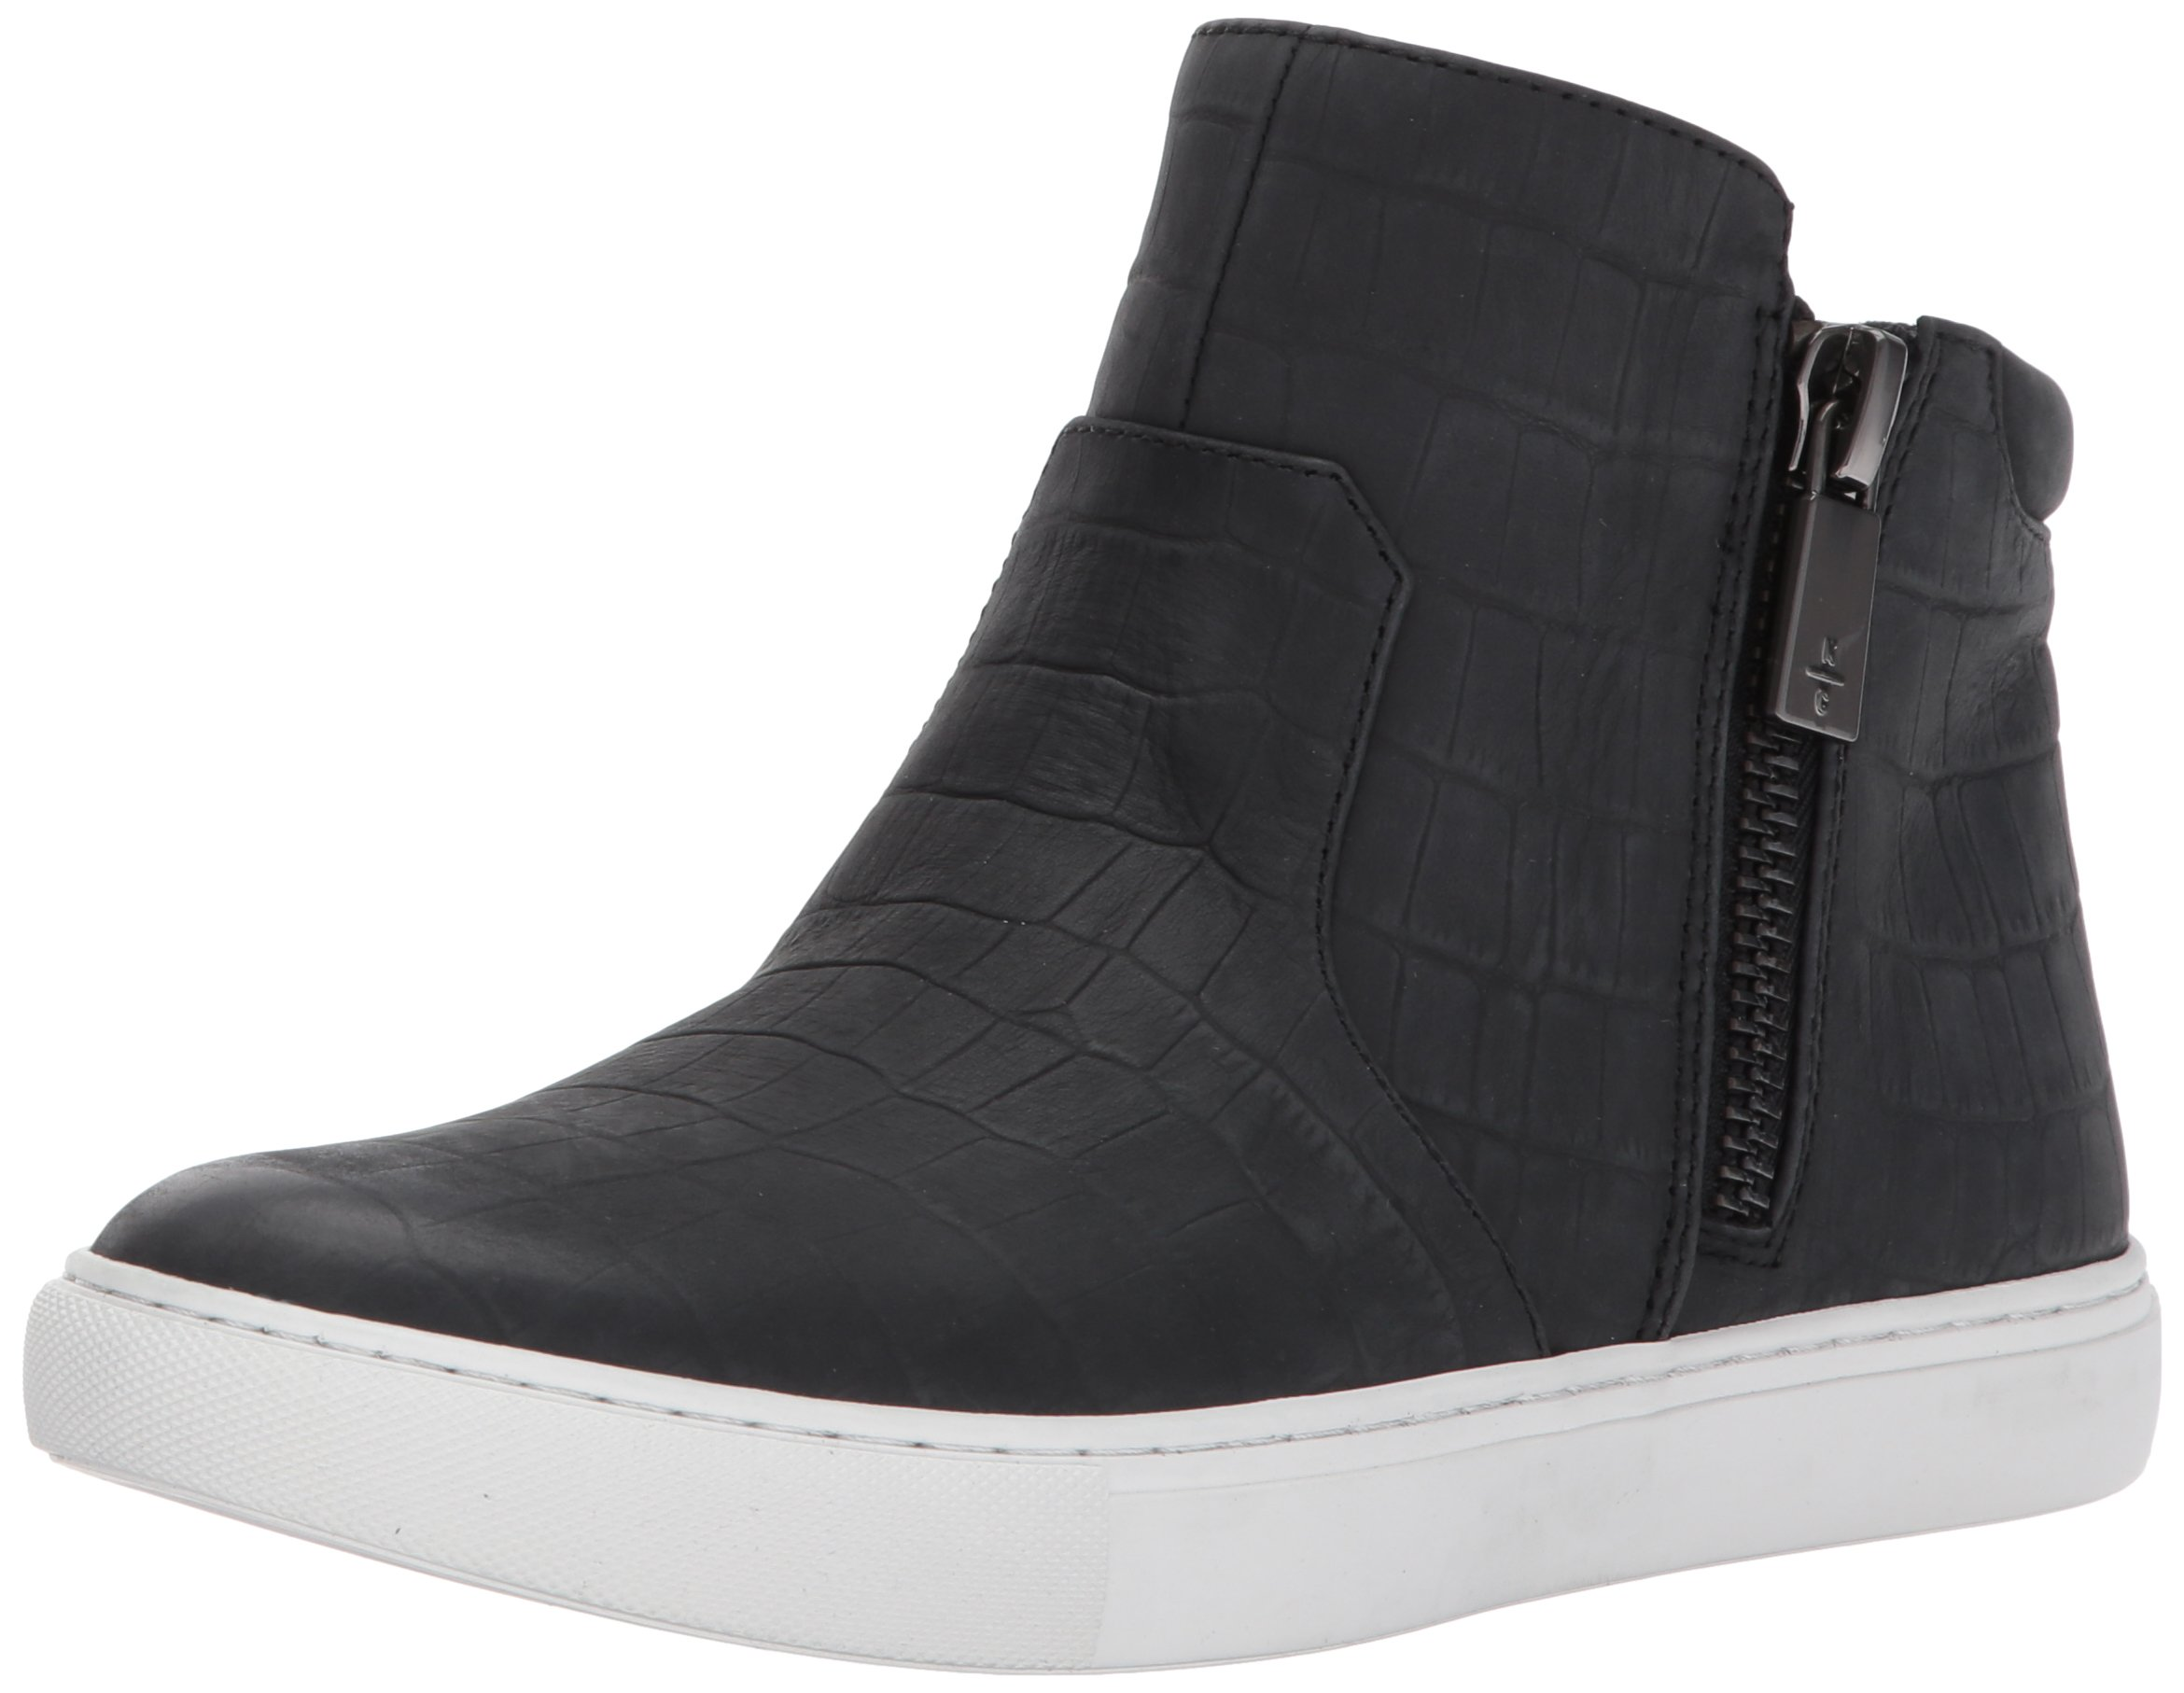 Kenneth Cole New York Women's Kiera Mid-Top Zippers Embossed Print Fashion Sneaker